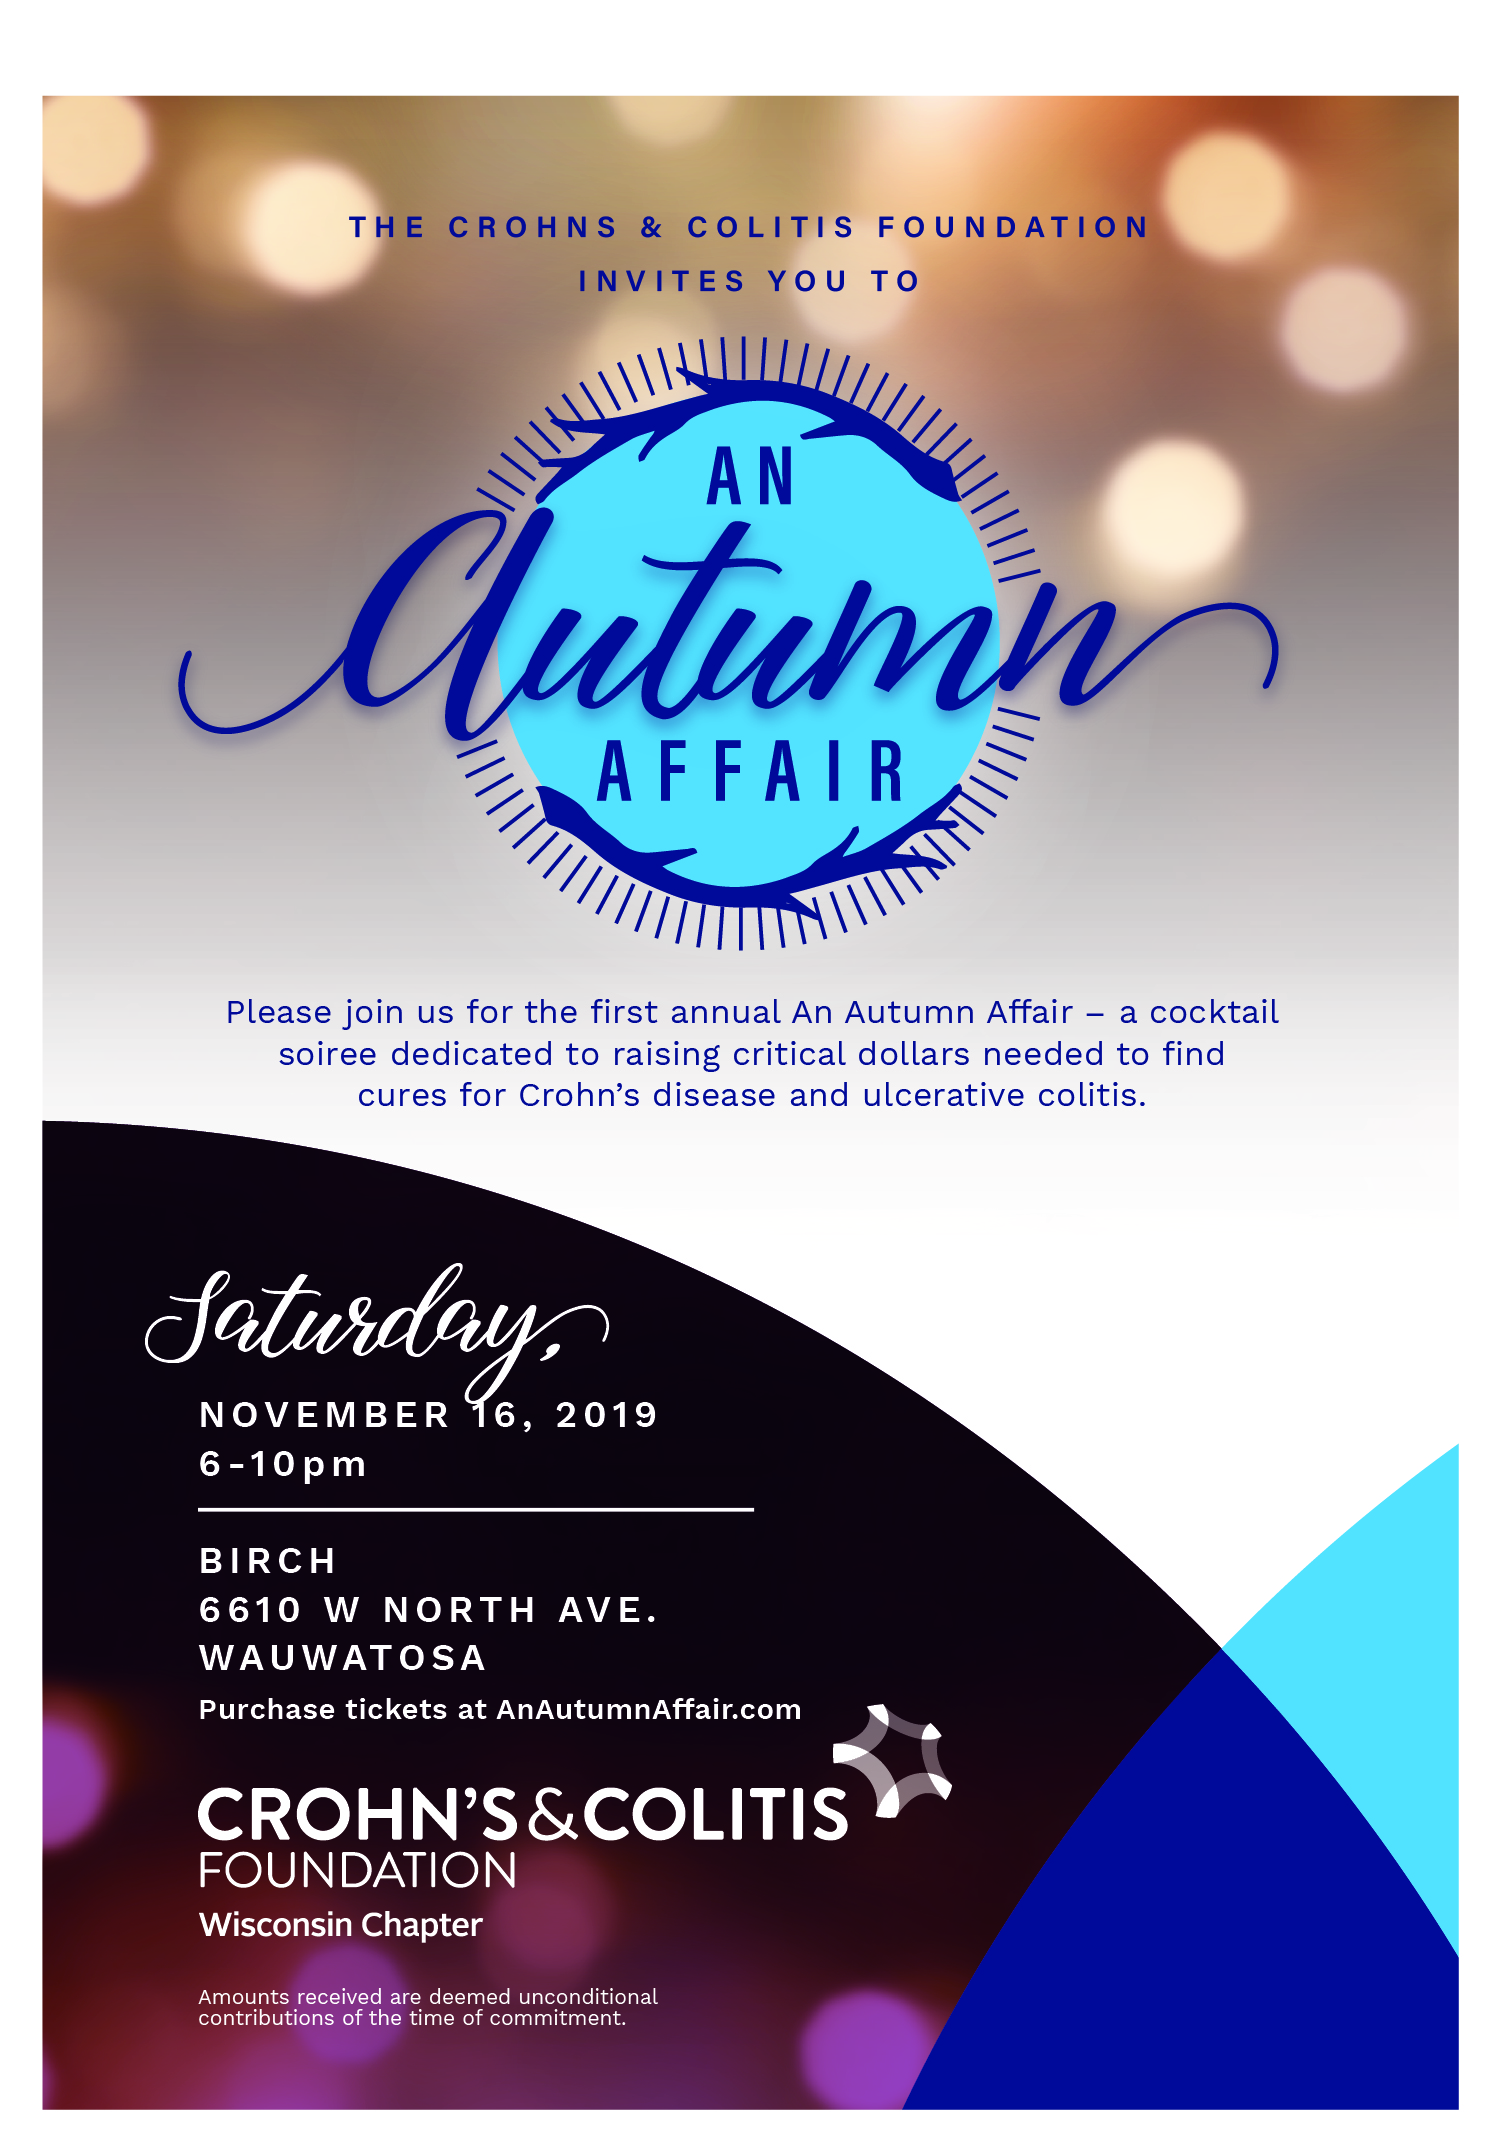 An Autumn Affair Invitation 2019